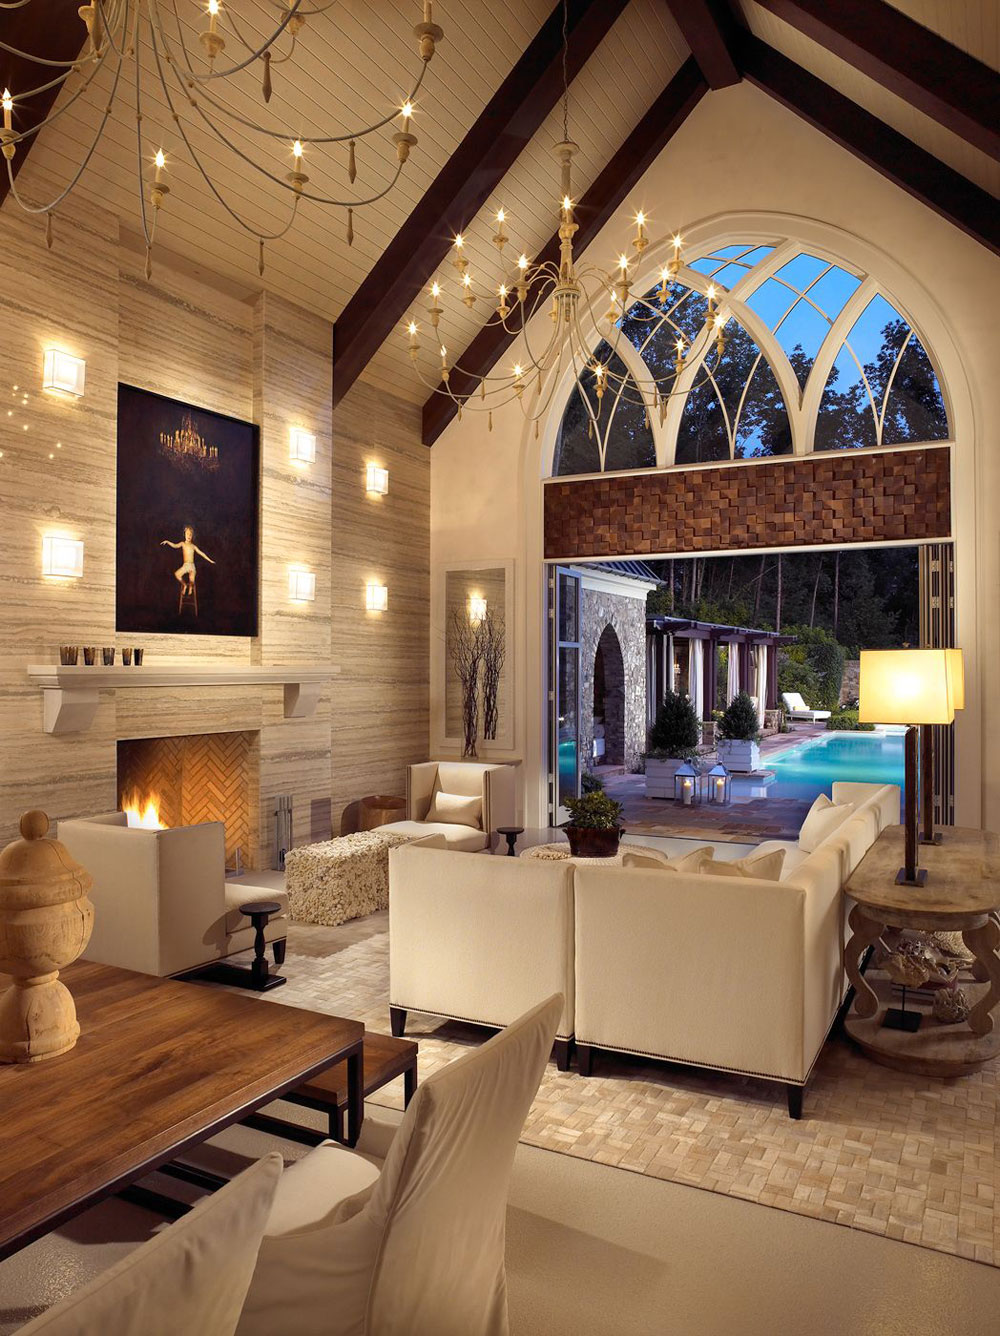 Marvelous Vaulted Ceiling Living Room Design Ideas 1 Vaulted Ceiling Living